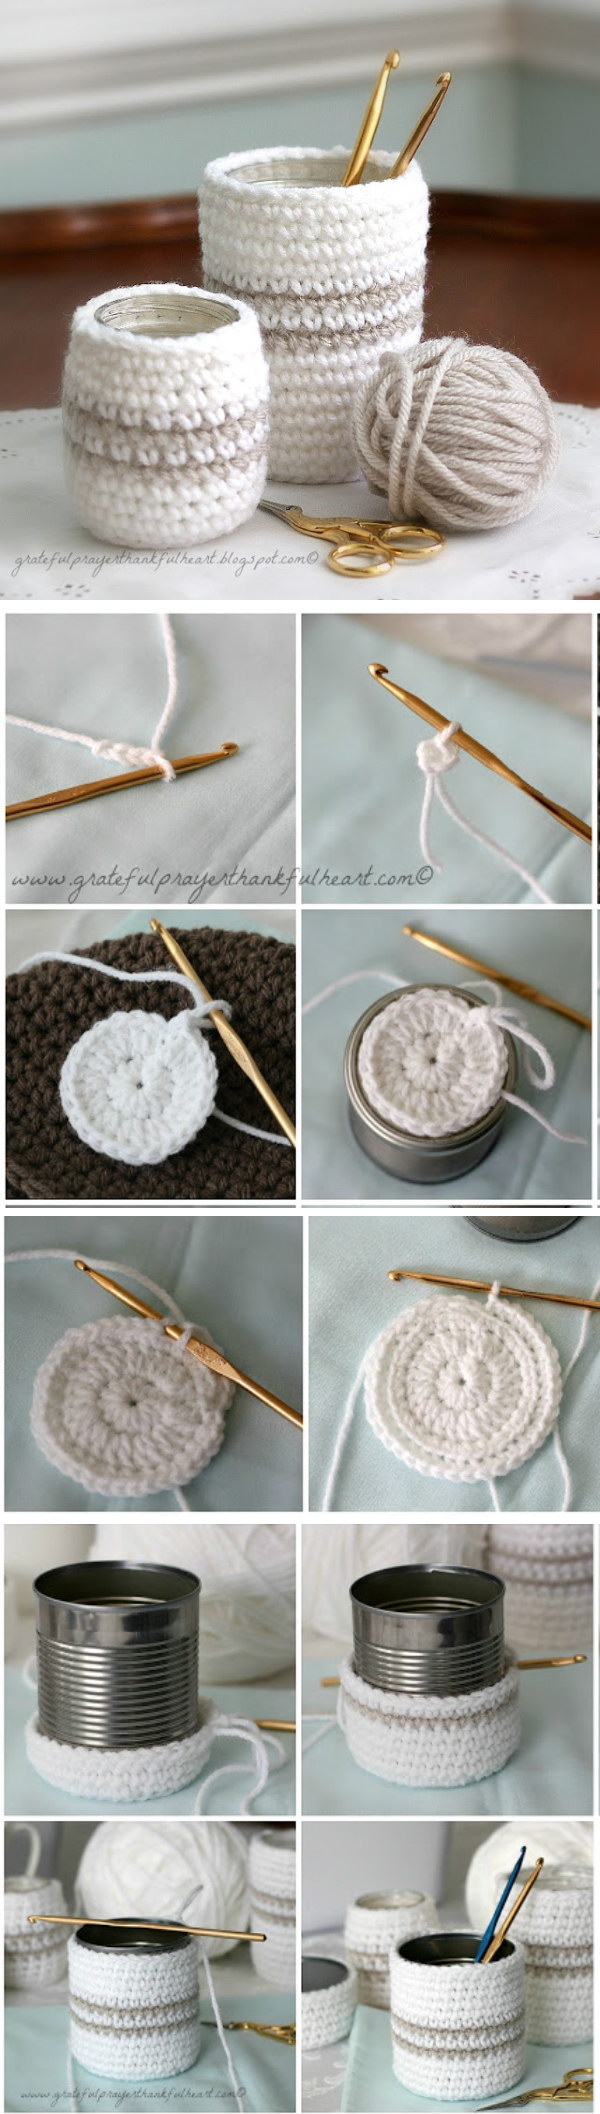 Crochet Cozy for Jars or Cans.